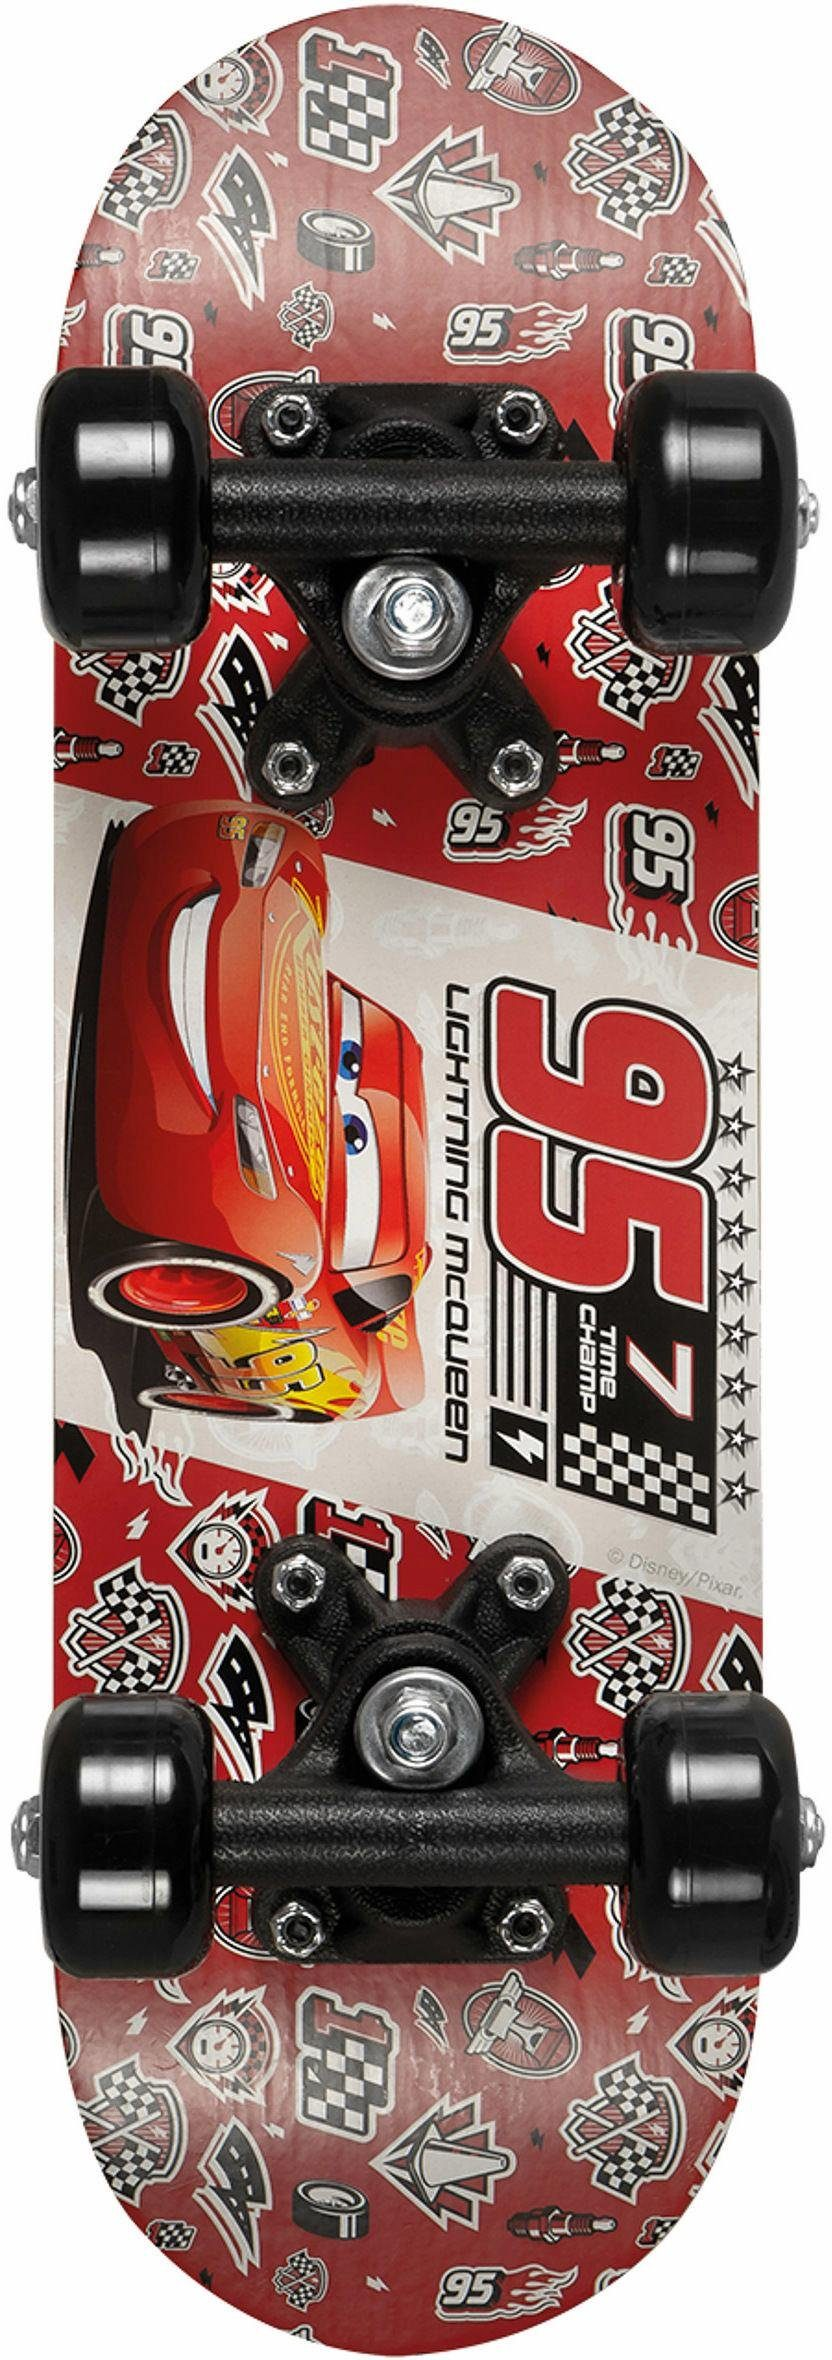 Disney Cars 3 Shortboard »Cars 3 Miniboard«